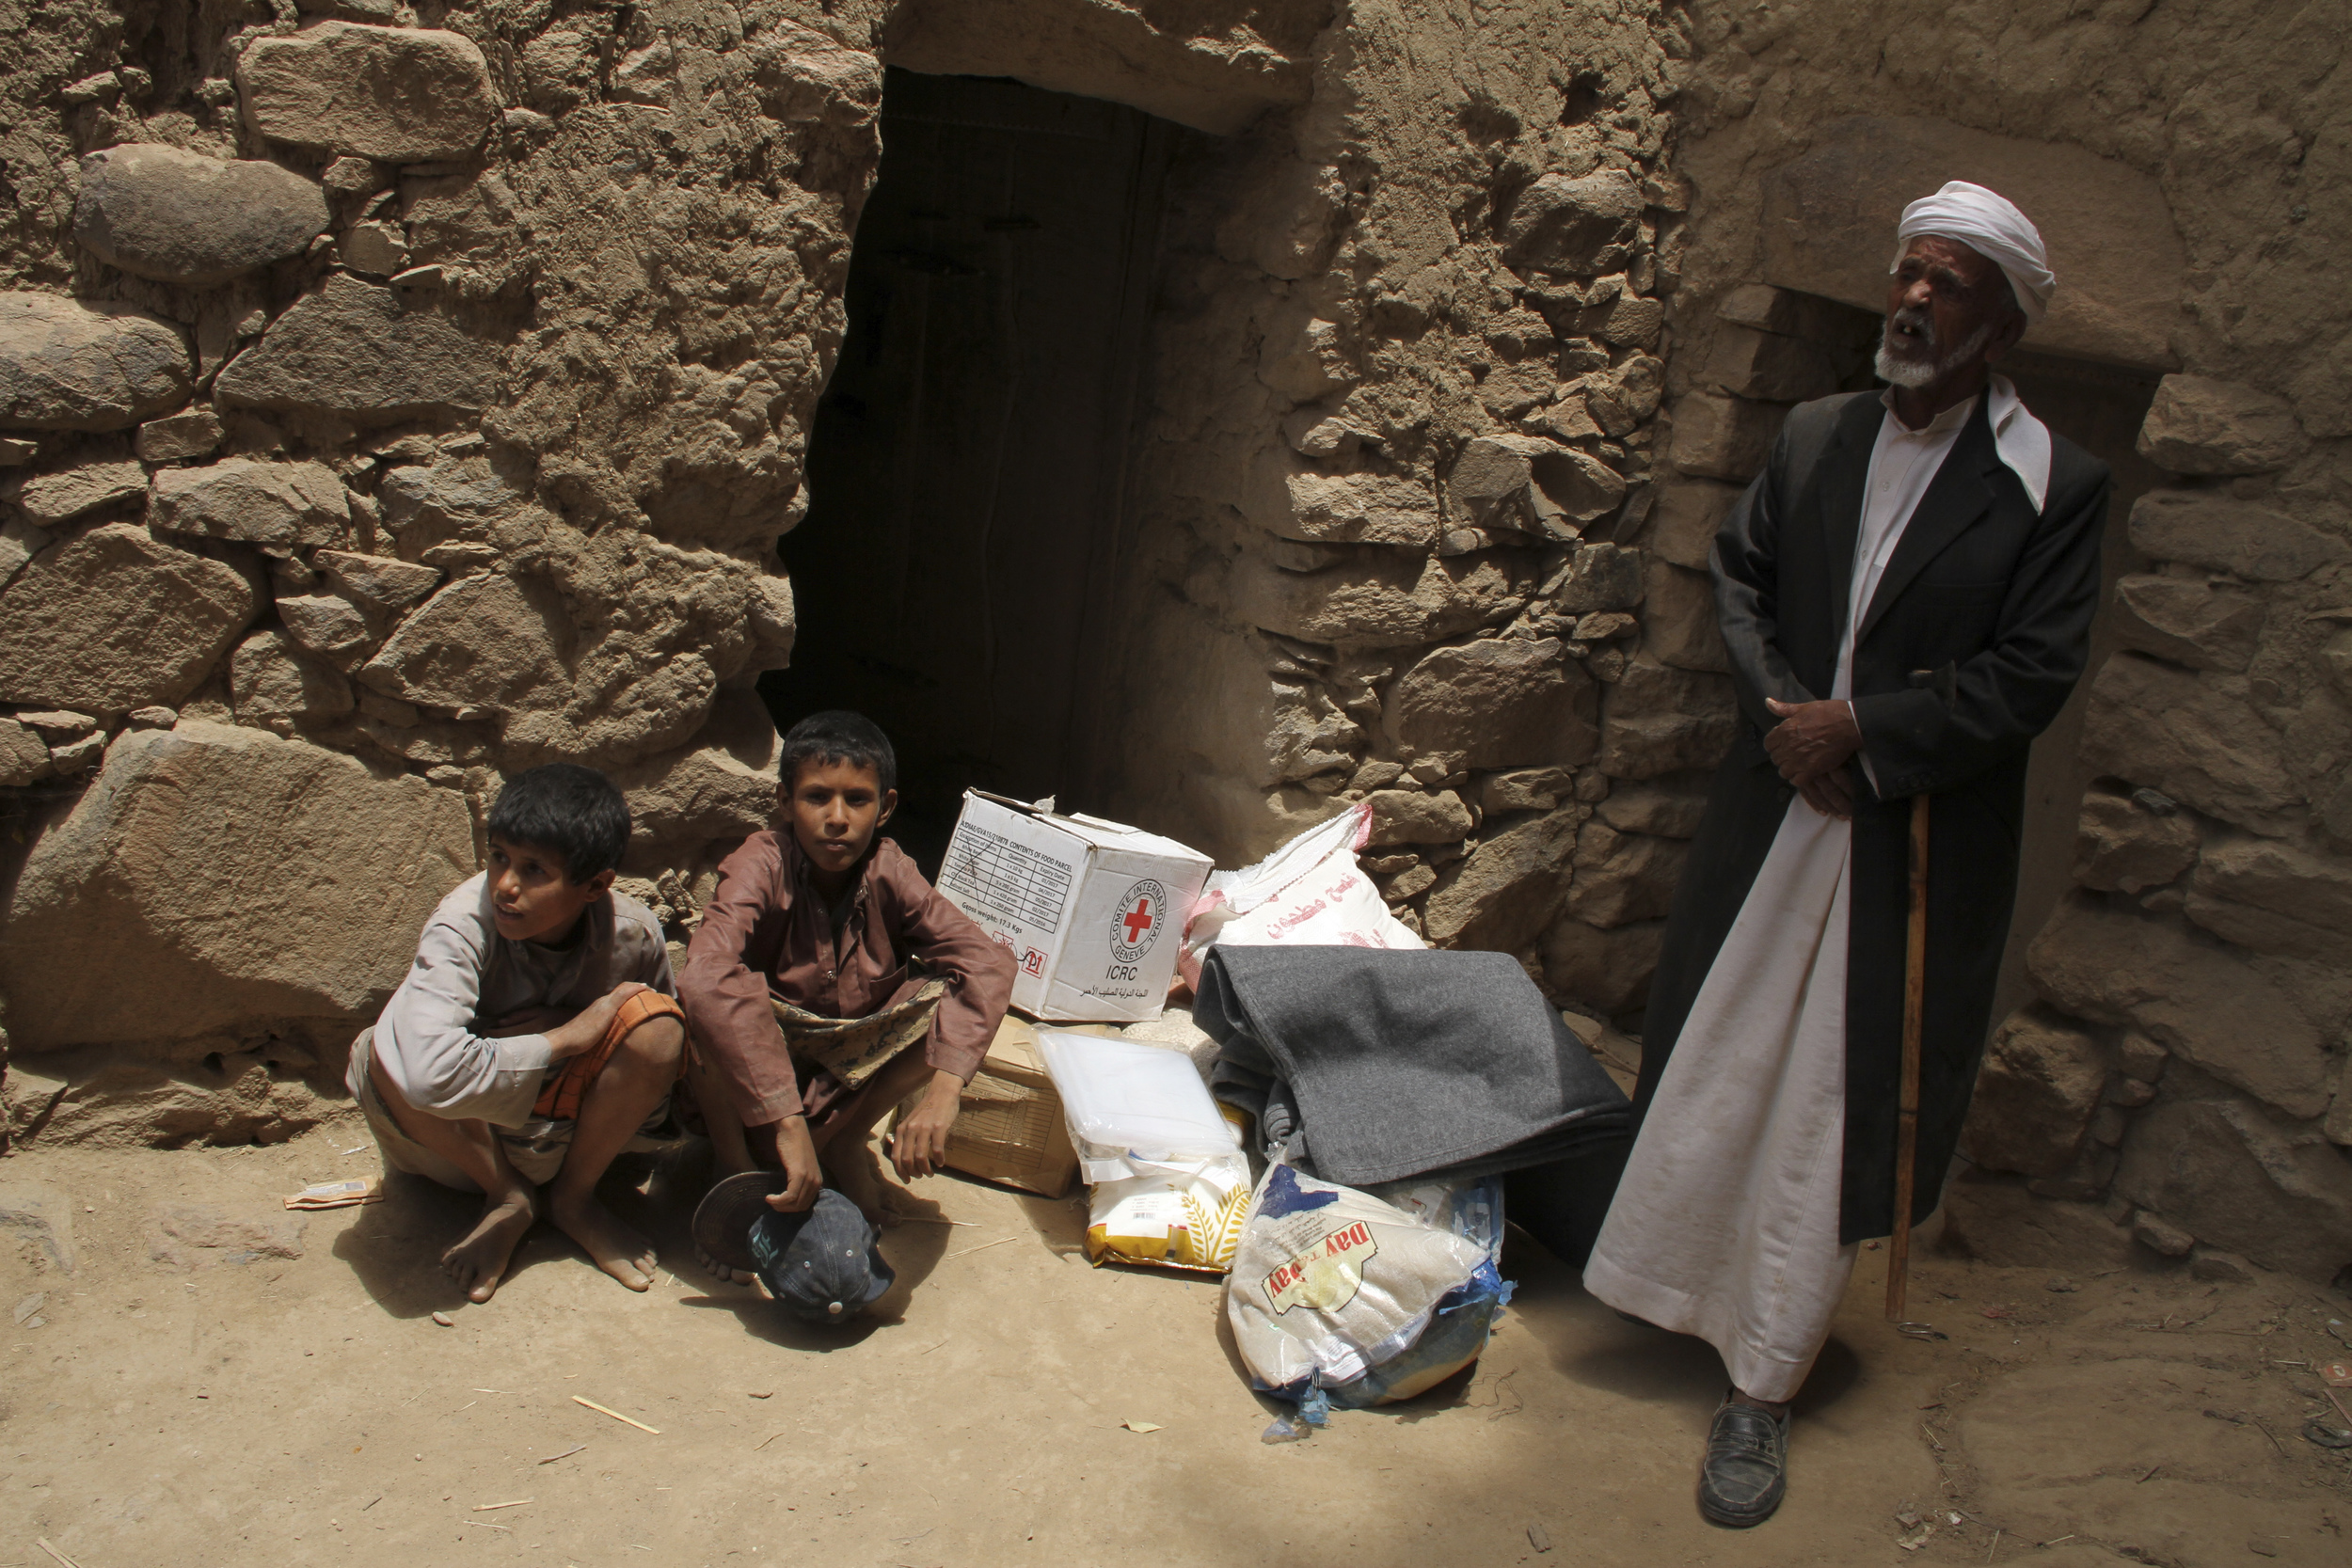 Sahar District, Saada. 90% of yemen's basic needs such as food, water, and fuel are imported into the country. Icrc's distribution of these essential household items are critical for many families.Hassan Al-najjar/ICRC.